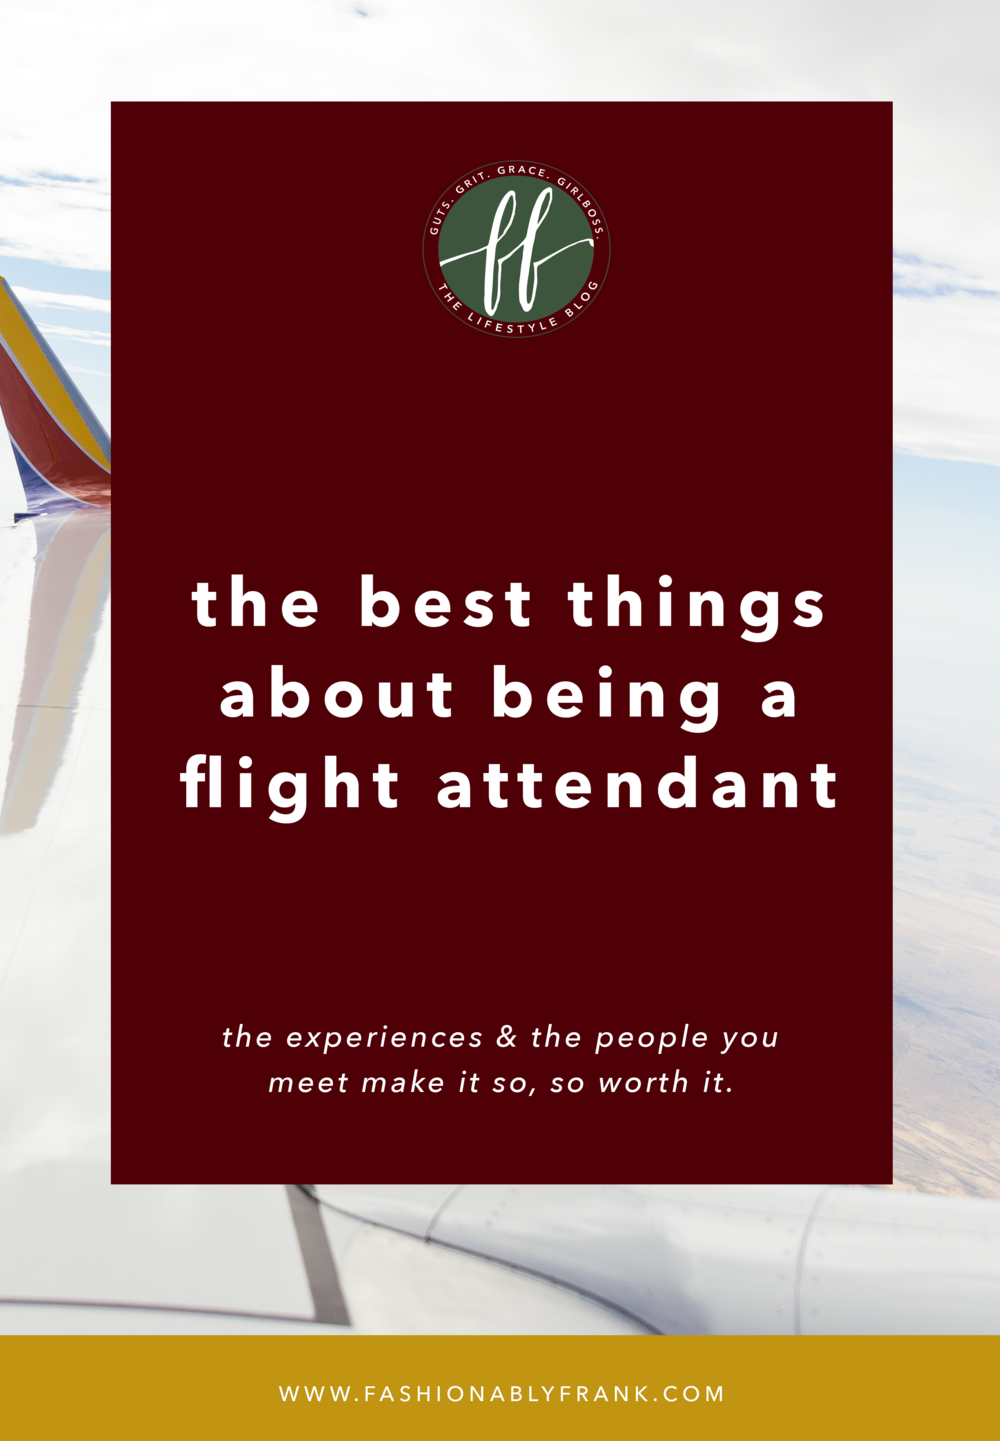 The Best Parts of Being a Flight Attendant